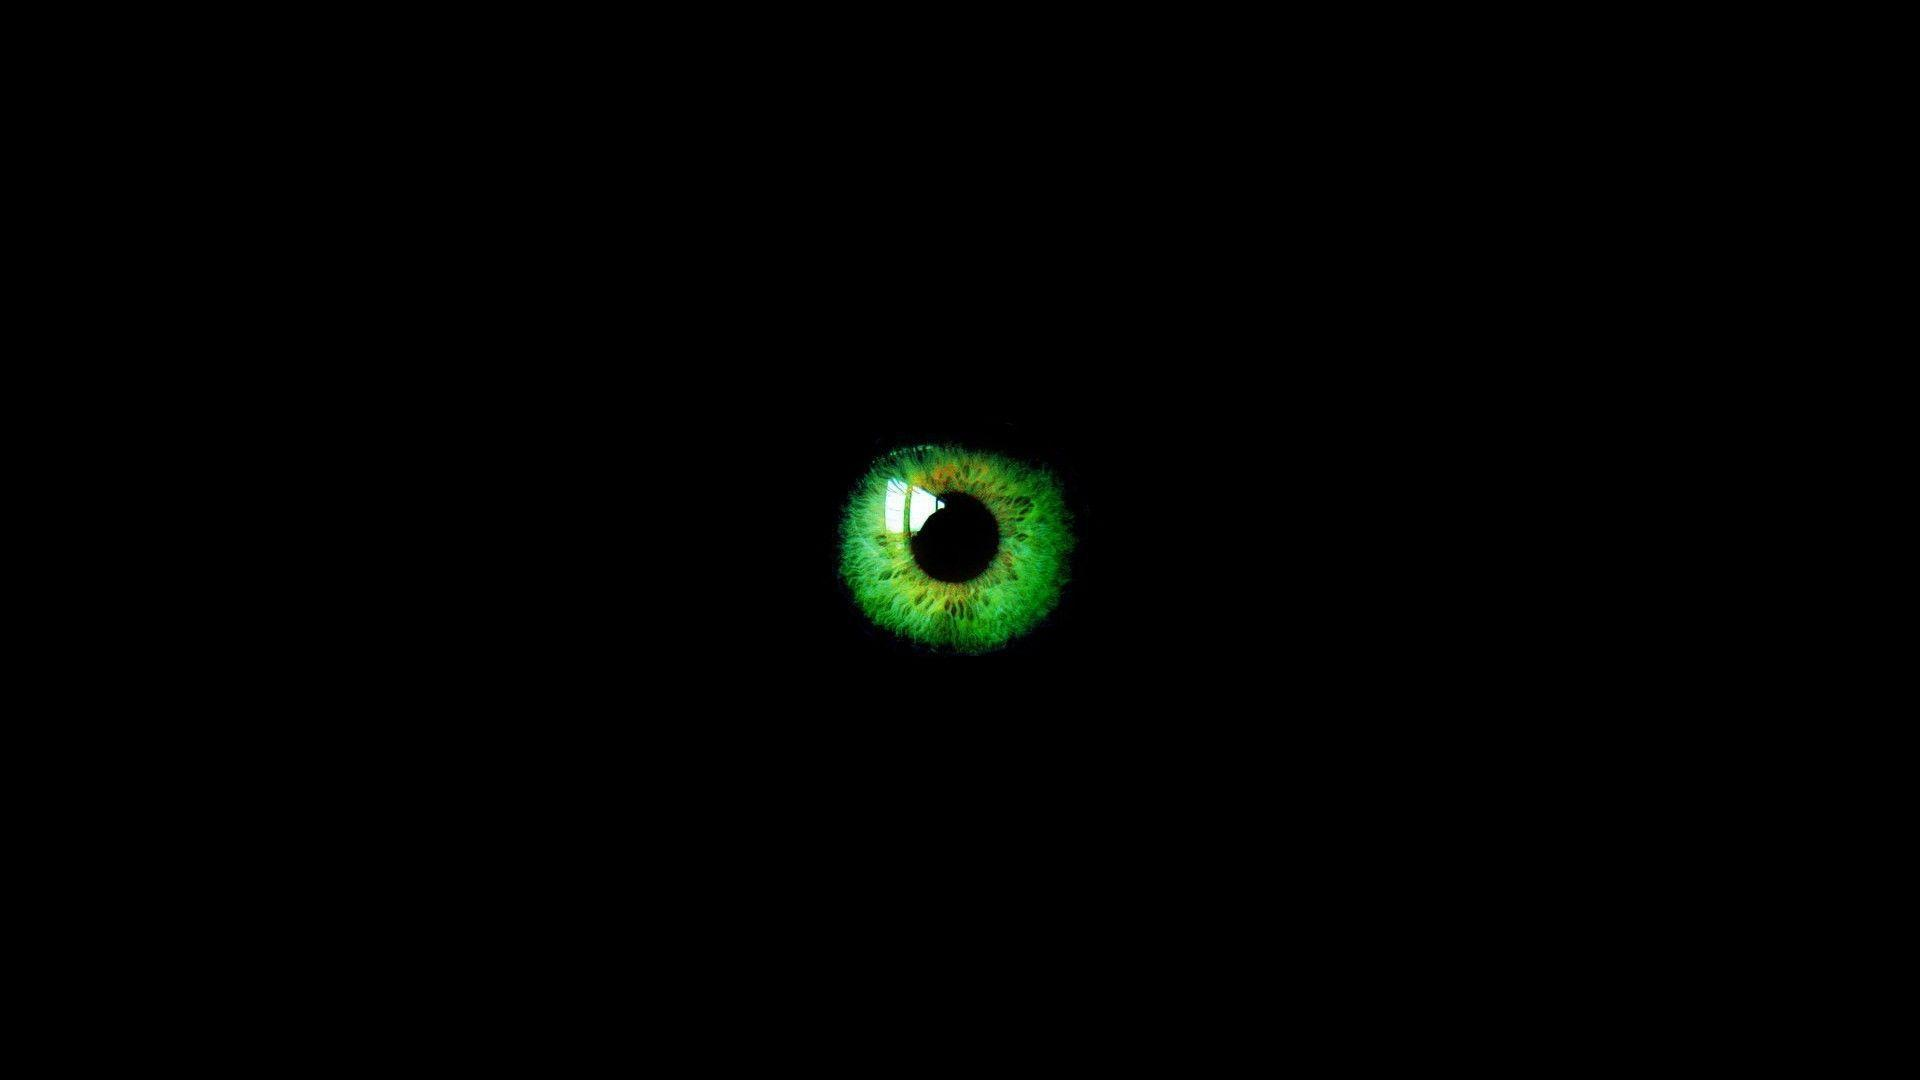 Green Eyes Wallpapers - Wallpaper Cave